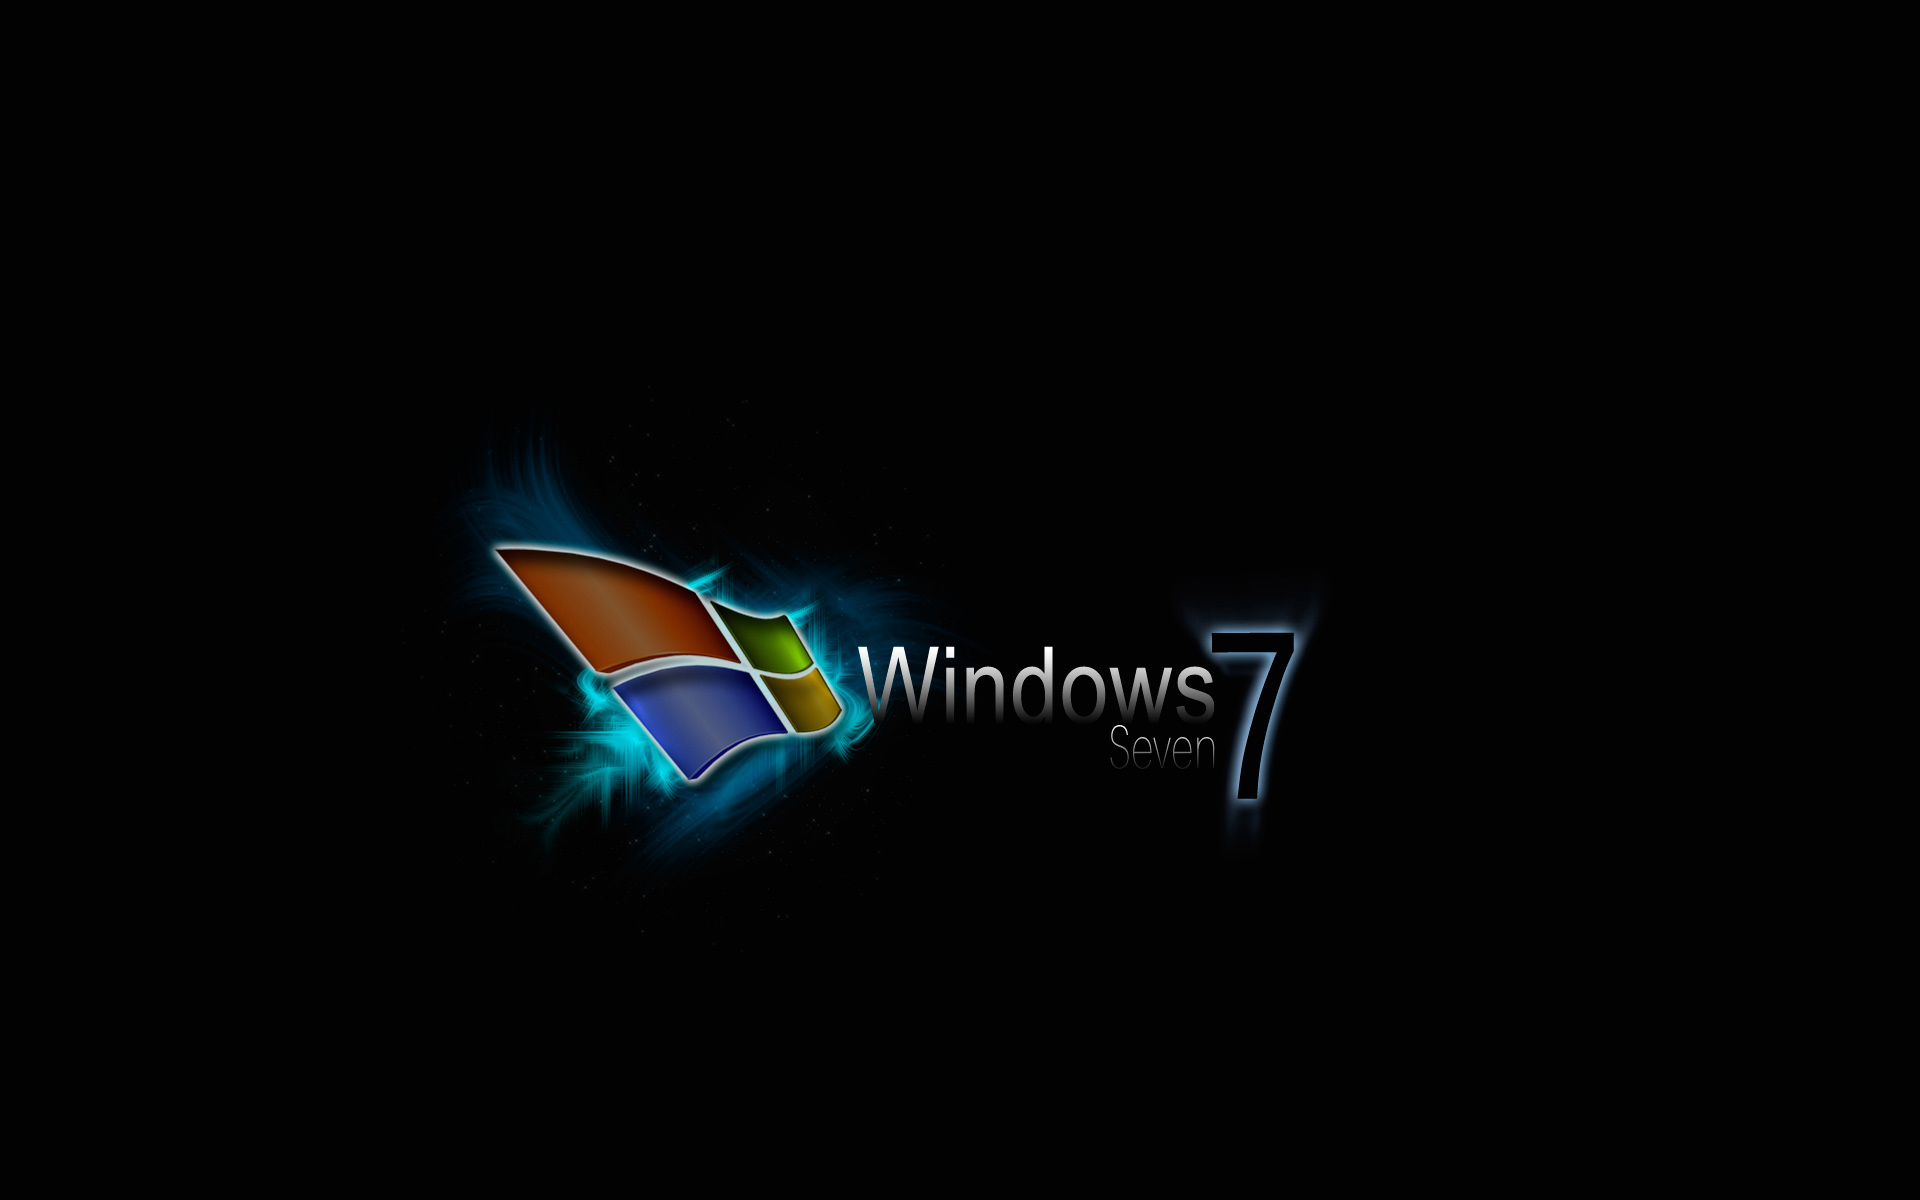 Windows 7 Wallpapers Backgrounds Hd 24